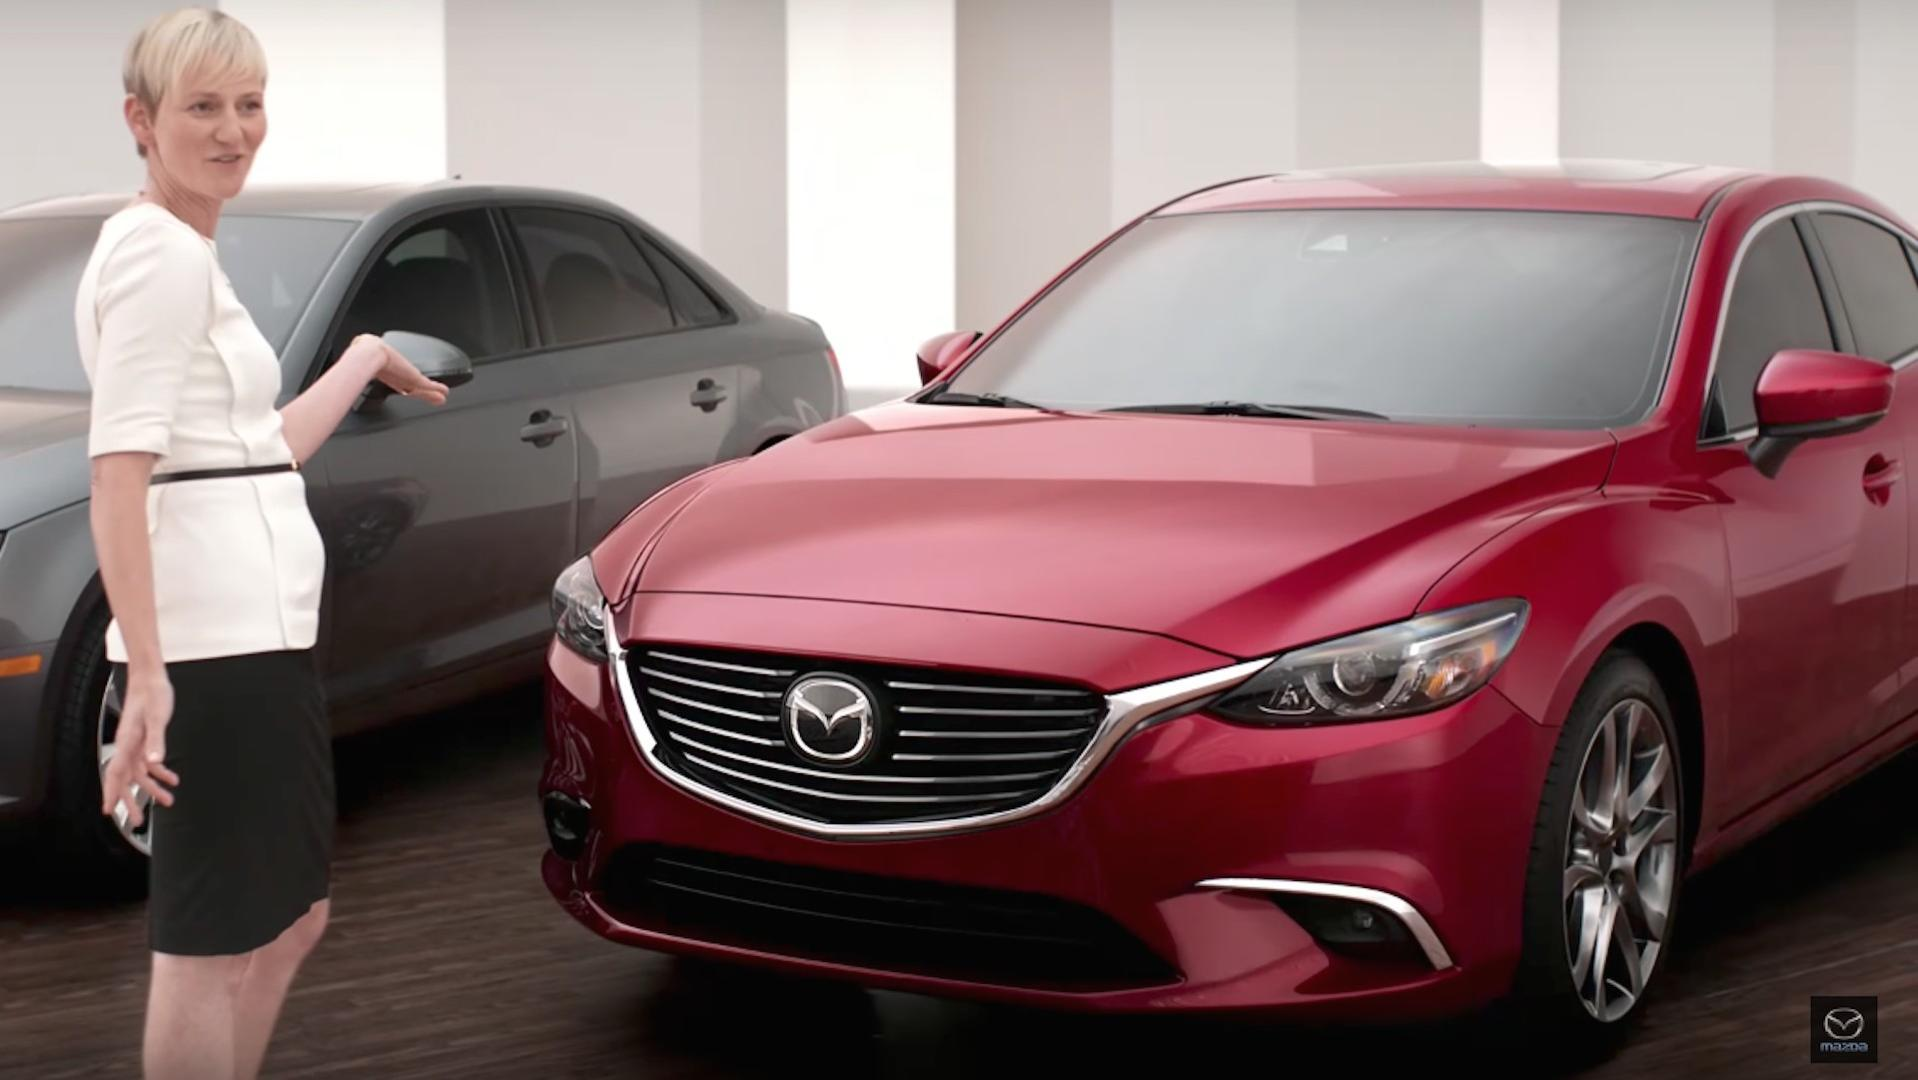 Mazda Mimics Chevy S Real People Commercials With Its Own